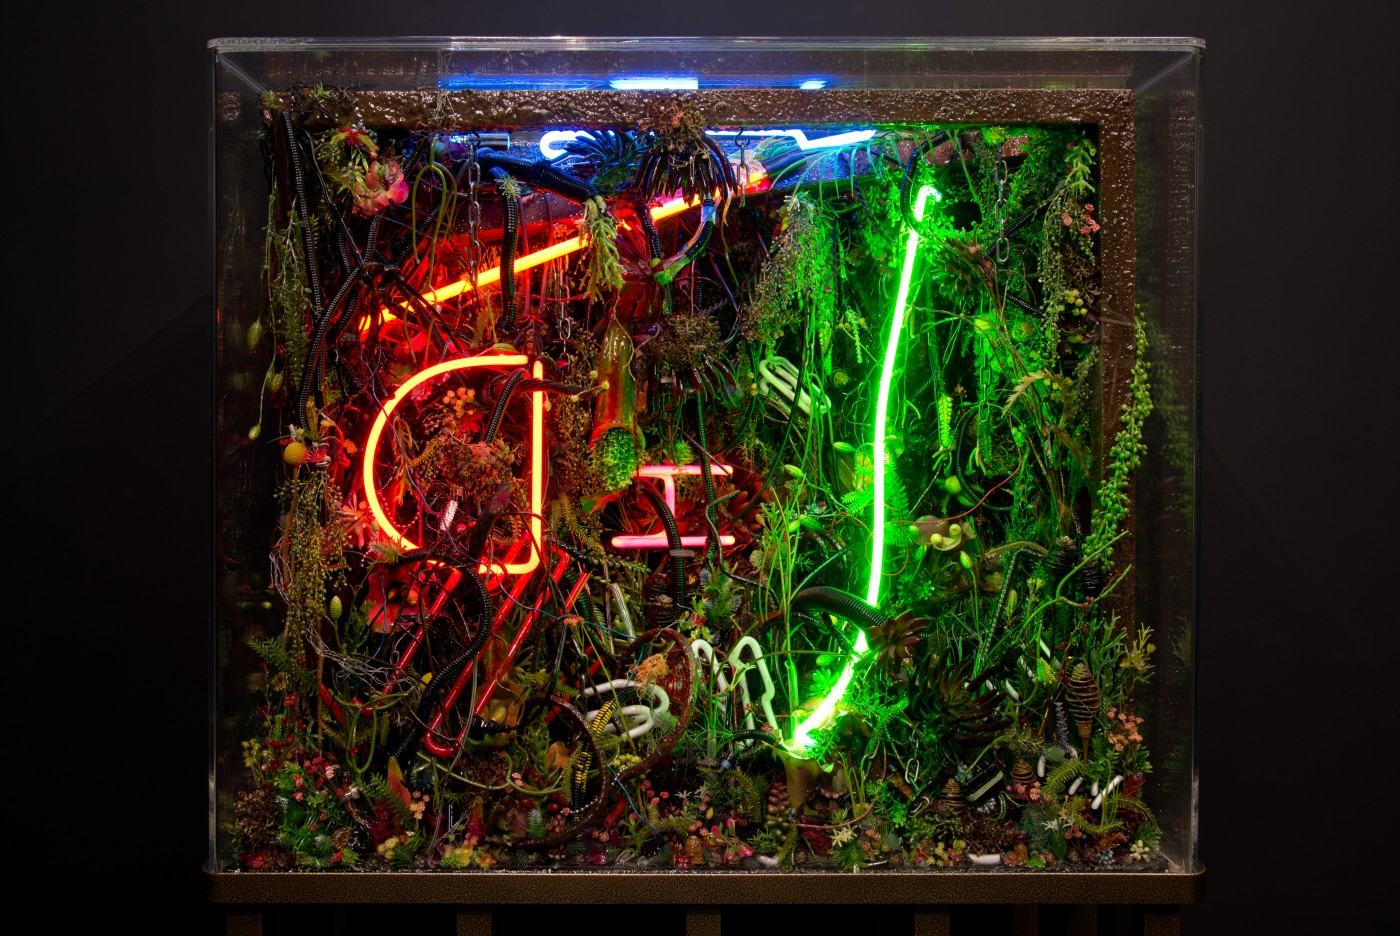 NATURE THEATER OF VIOLENT SUCCESSION  The Extinction of Neon 2</I>, 2015 (detail) Acrylic terrarium, modeled landscape, used and broken neon signs, plastic flora, gallows structure, automotive detritus, steel chains, GTO wires, found objects, insect and animal matter, polymer resin, custom aluminum stand  167.6 x 106.7 x 61 cm / 66 x 42 x 24 in - High Art Gallery Paris